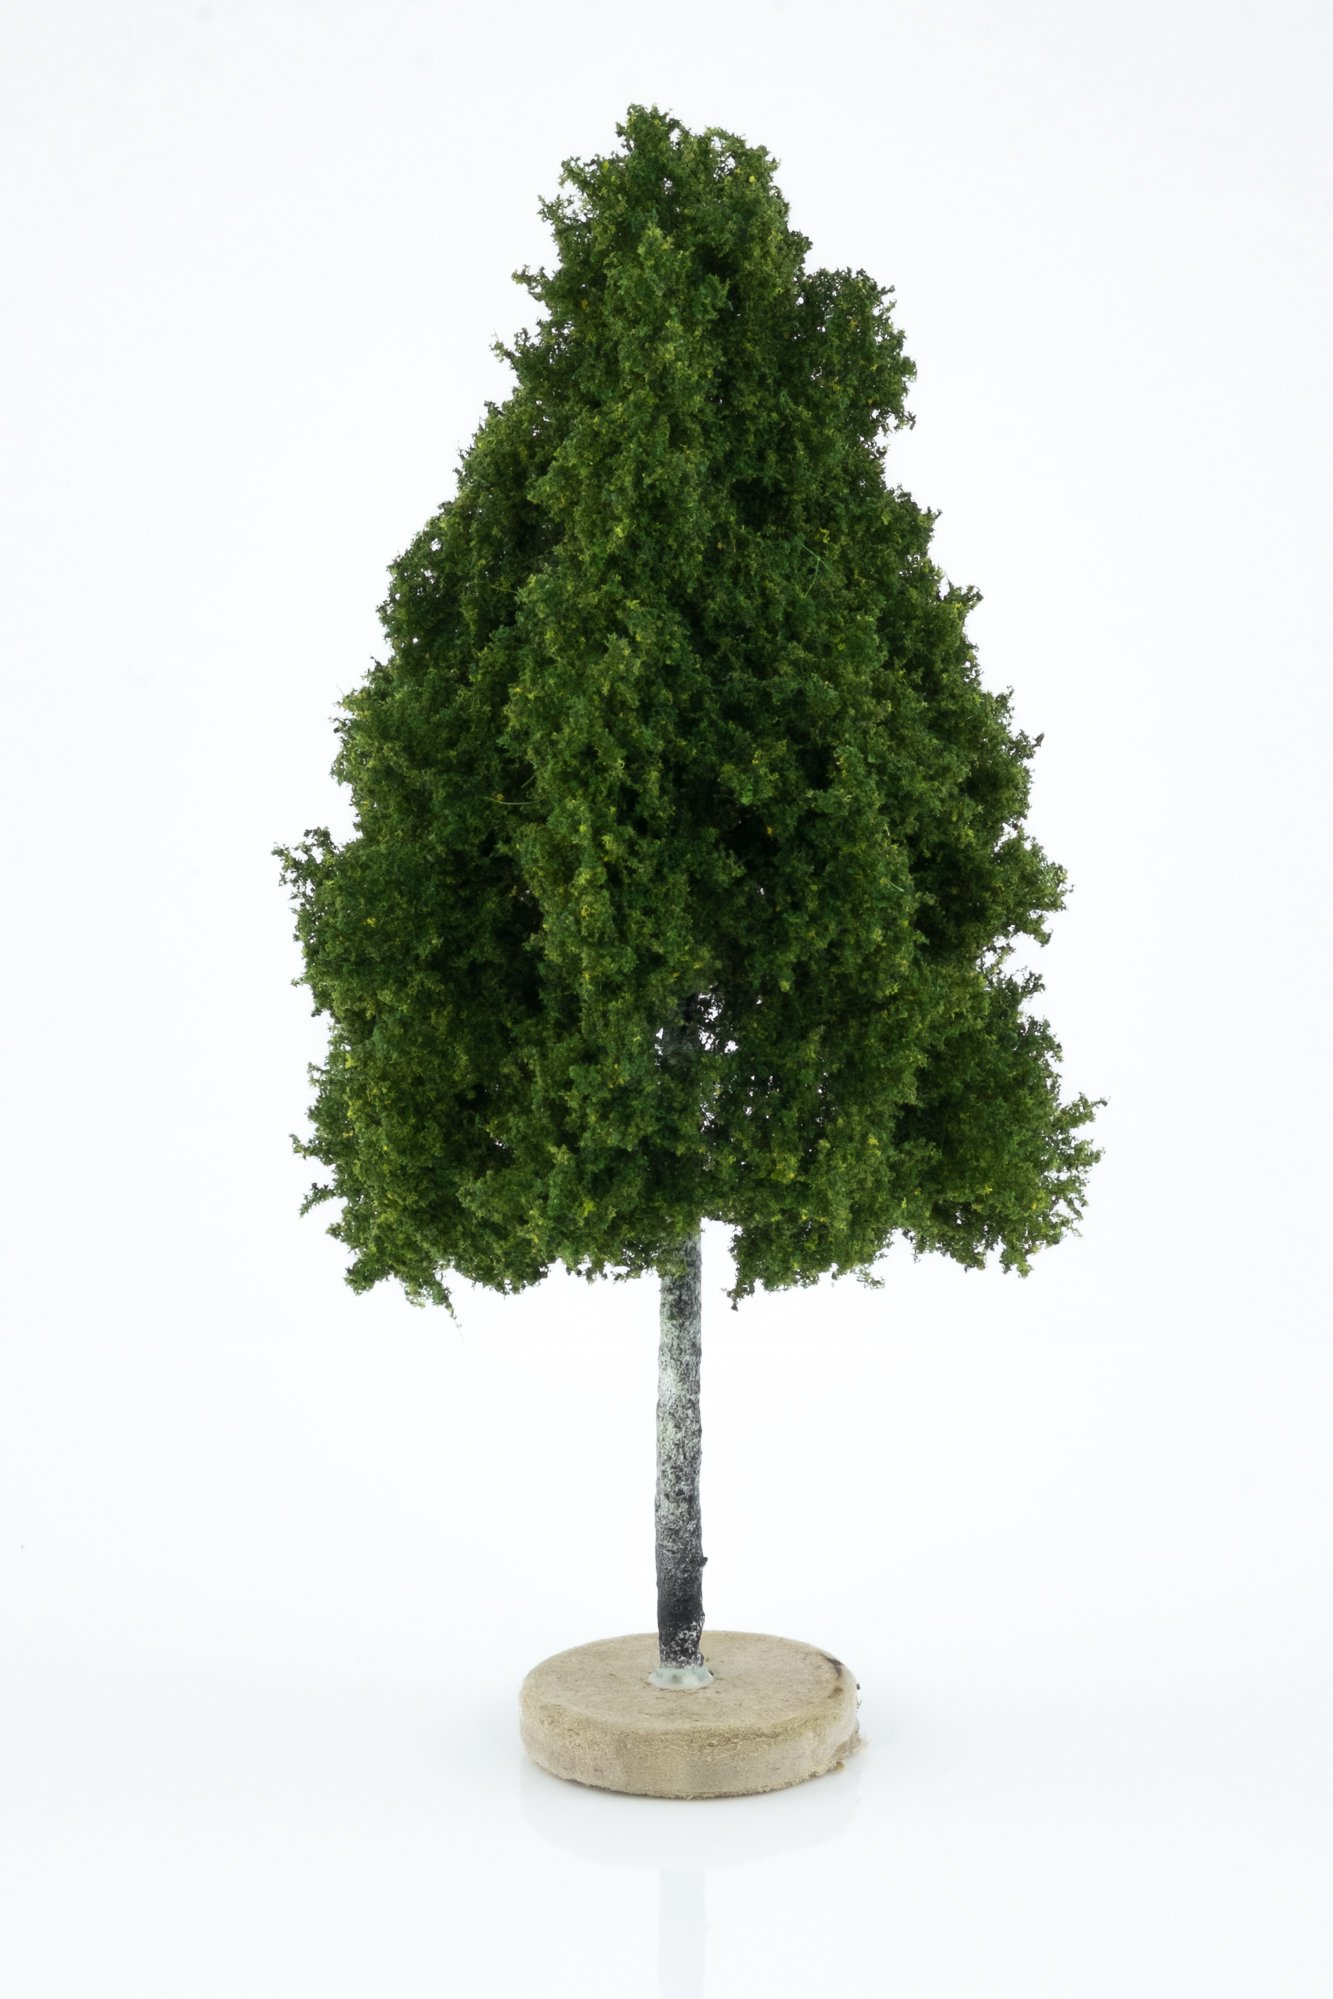 Hand-made, green, birch tree model. Size between 14 and 16 cm. Made from high quality model supplies by Primo Models.